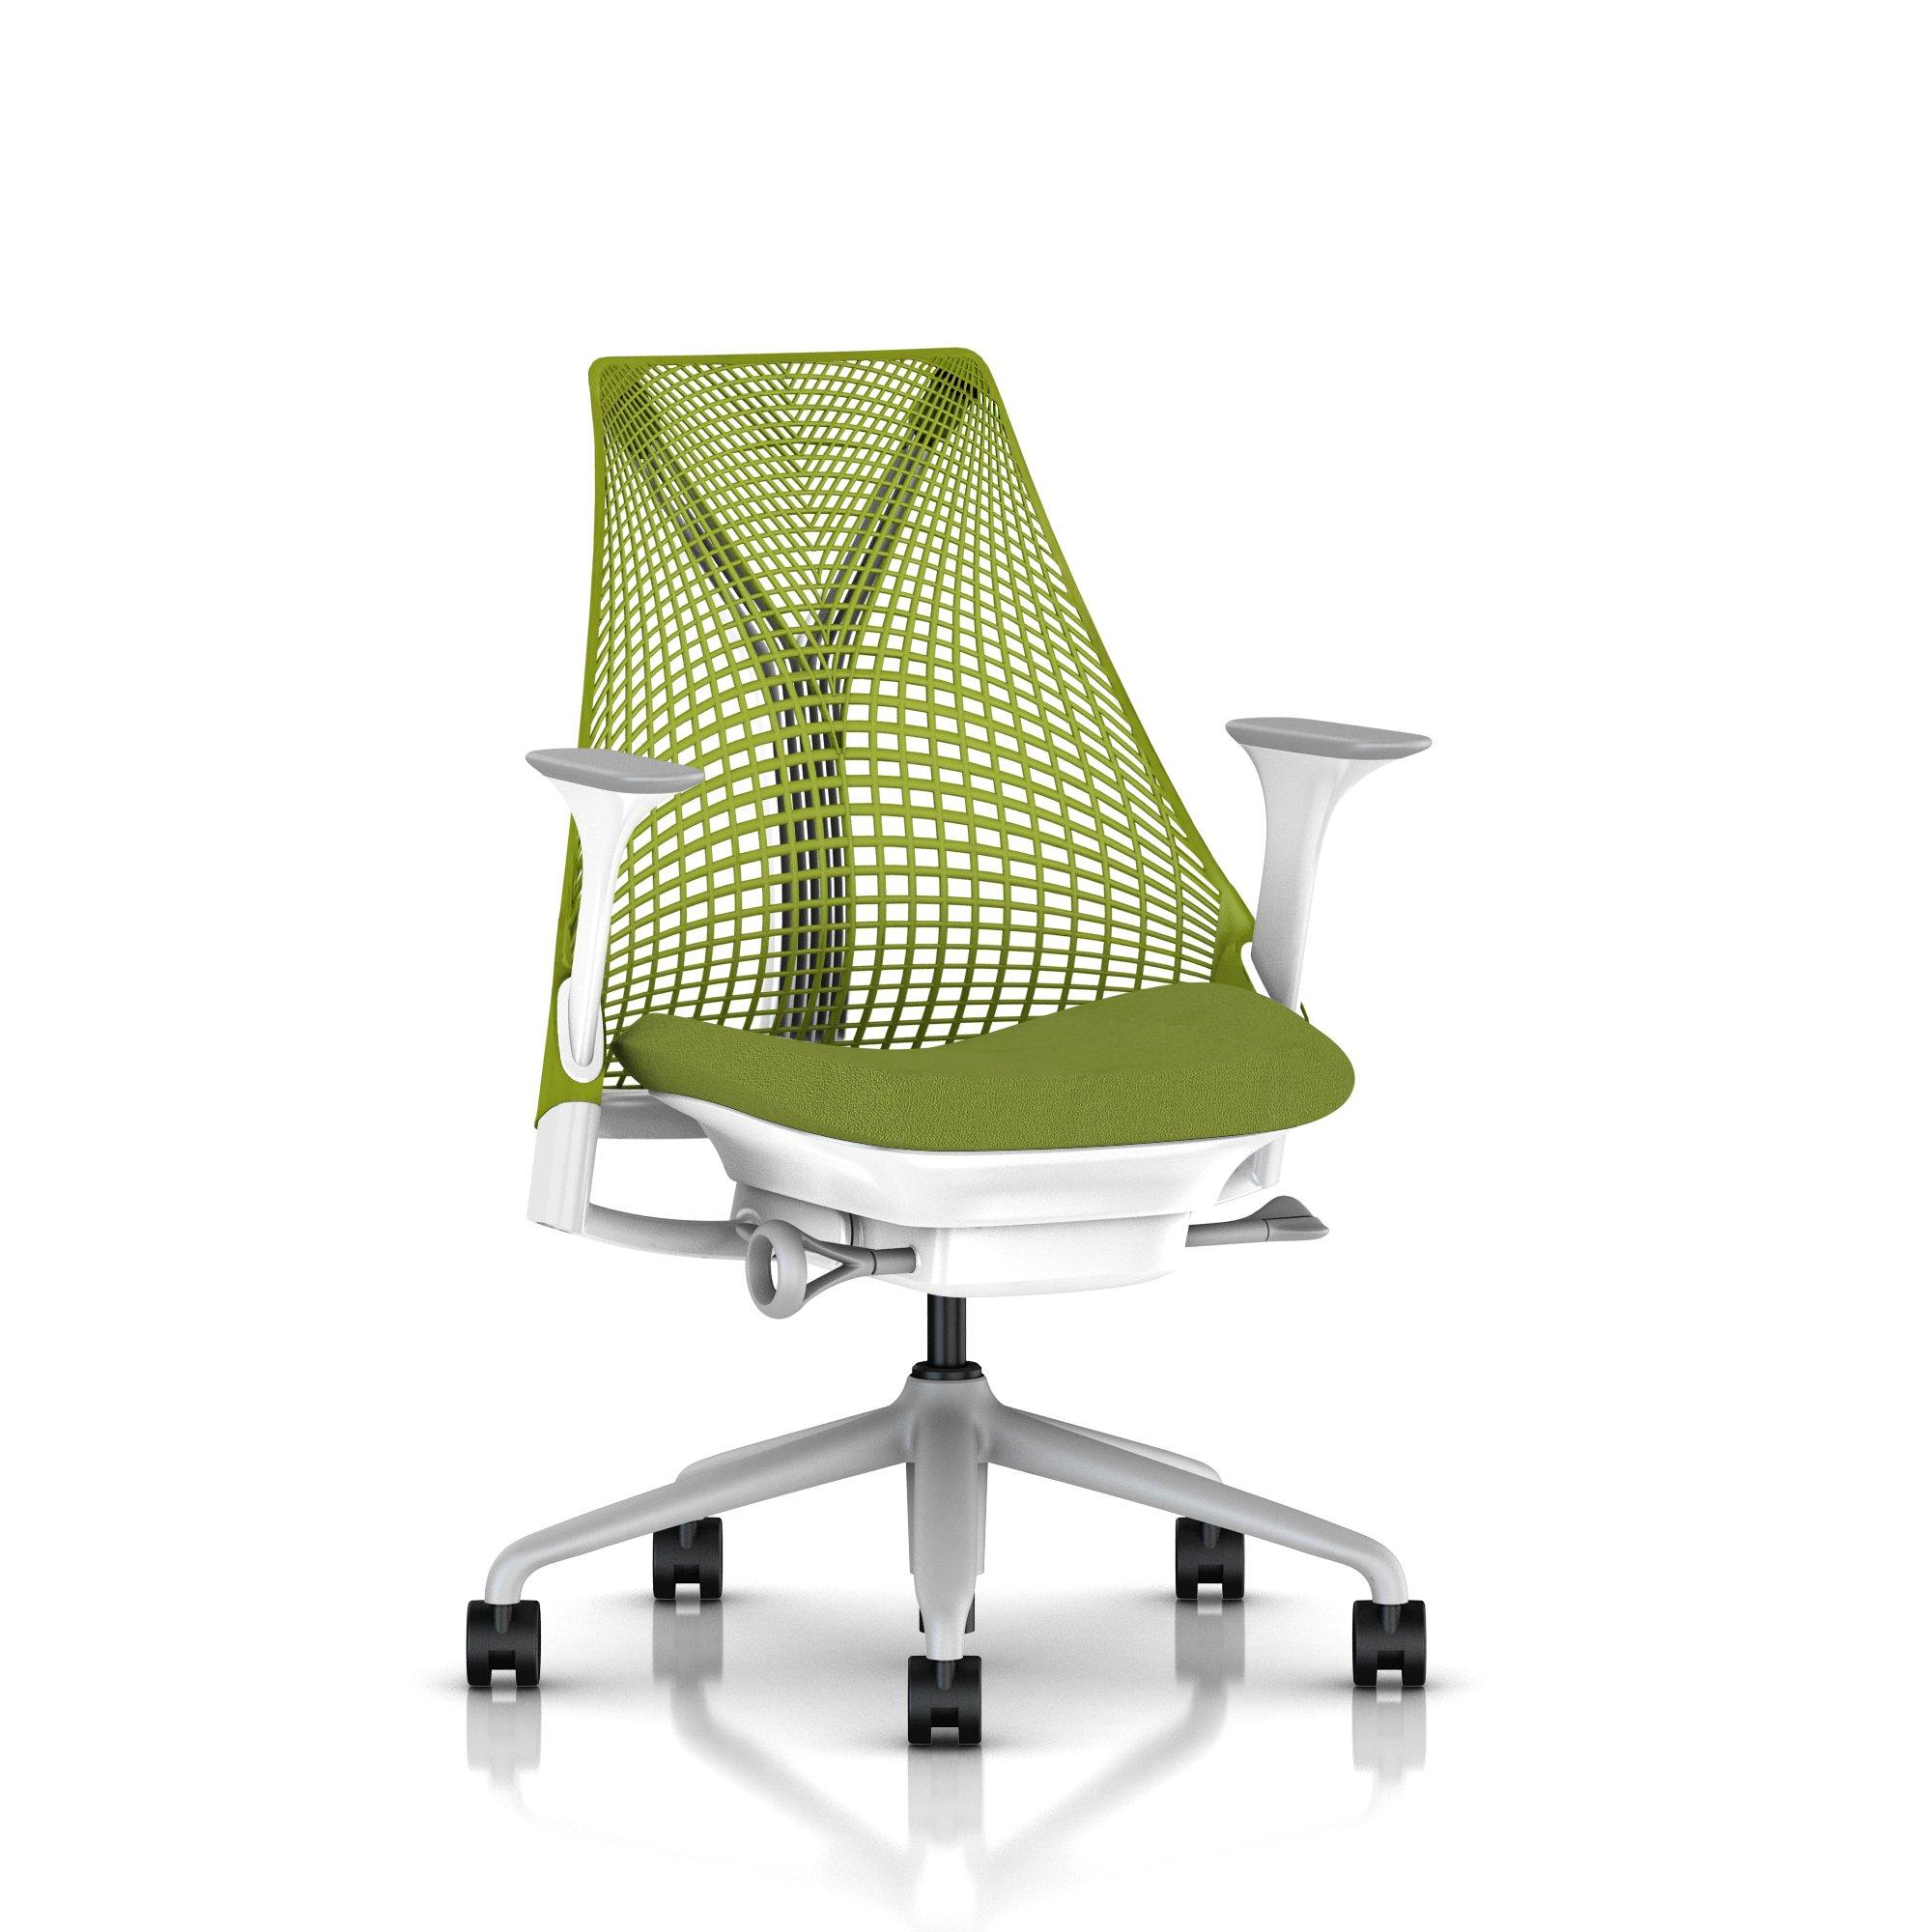 Fog Base with Studio White Y-Tower, Green Apple Back, Cosmo Avocado Fabric Seat, Fog Armpad, Tilt Limiter with Seat Angle Adjustment, Height Adjustable Arms, Adjustable Seat Depth, Non-Adjustable Back Support, 2.5-inch Standard Carpet Casters